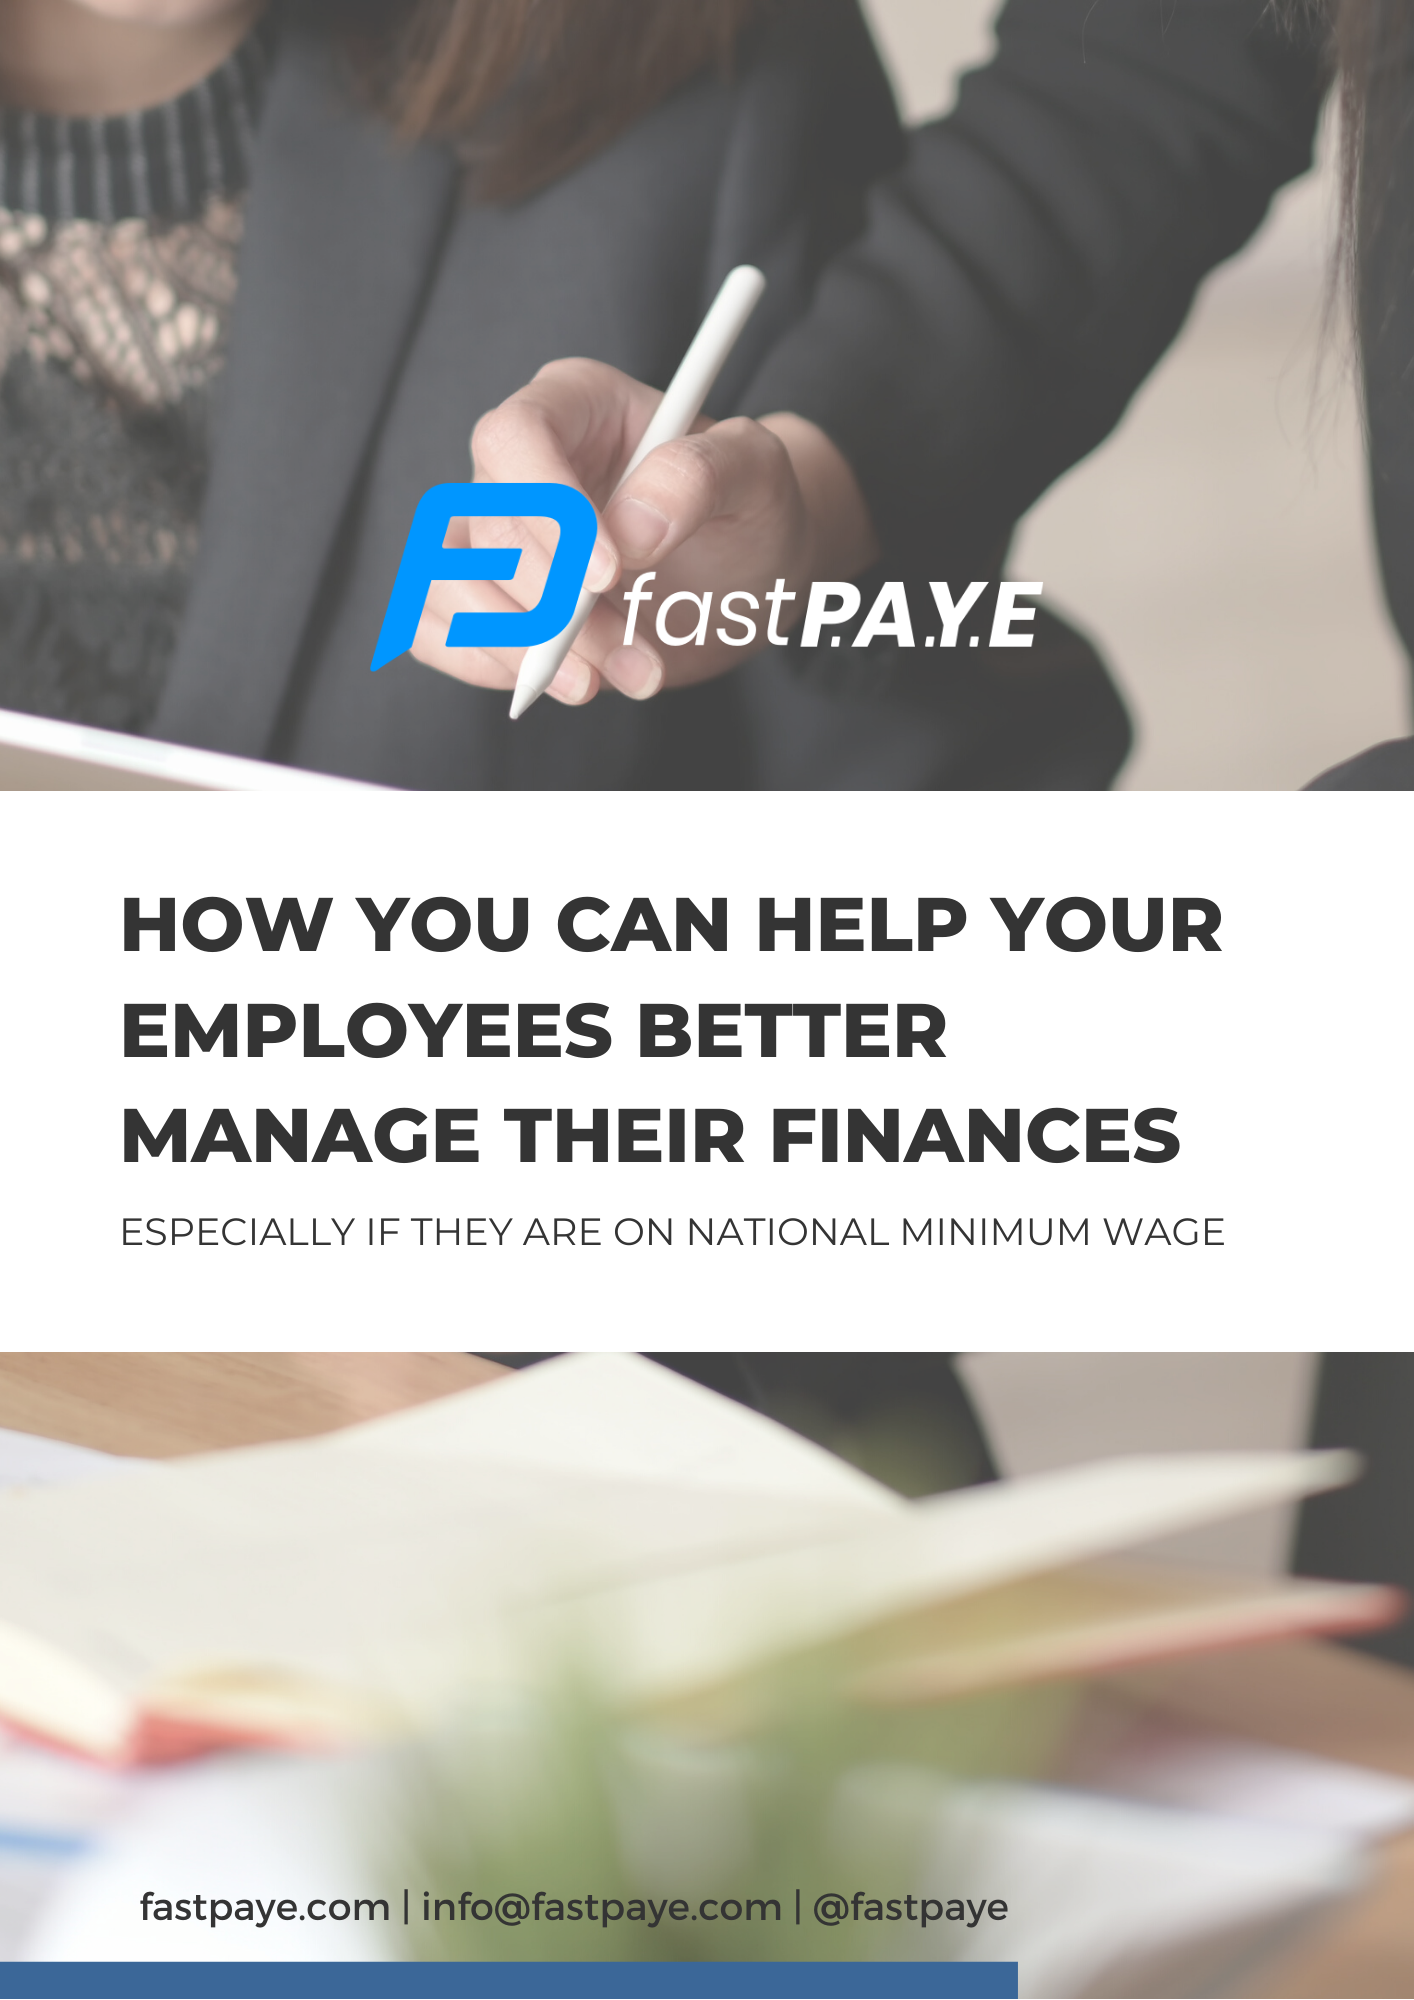 How you can help your employees better manage their finances